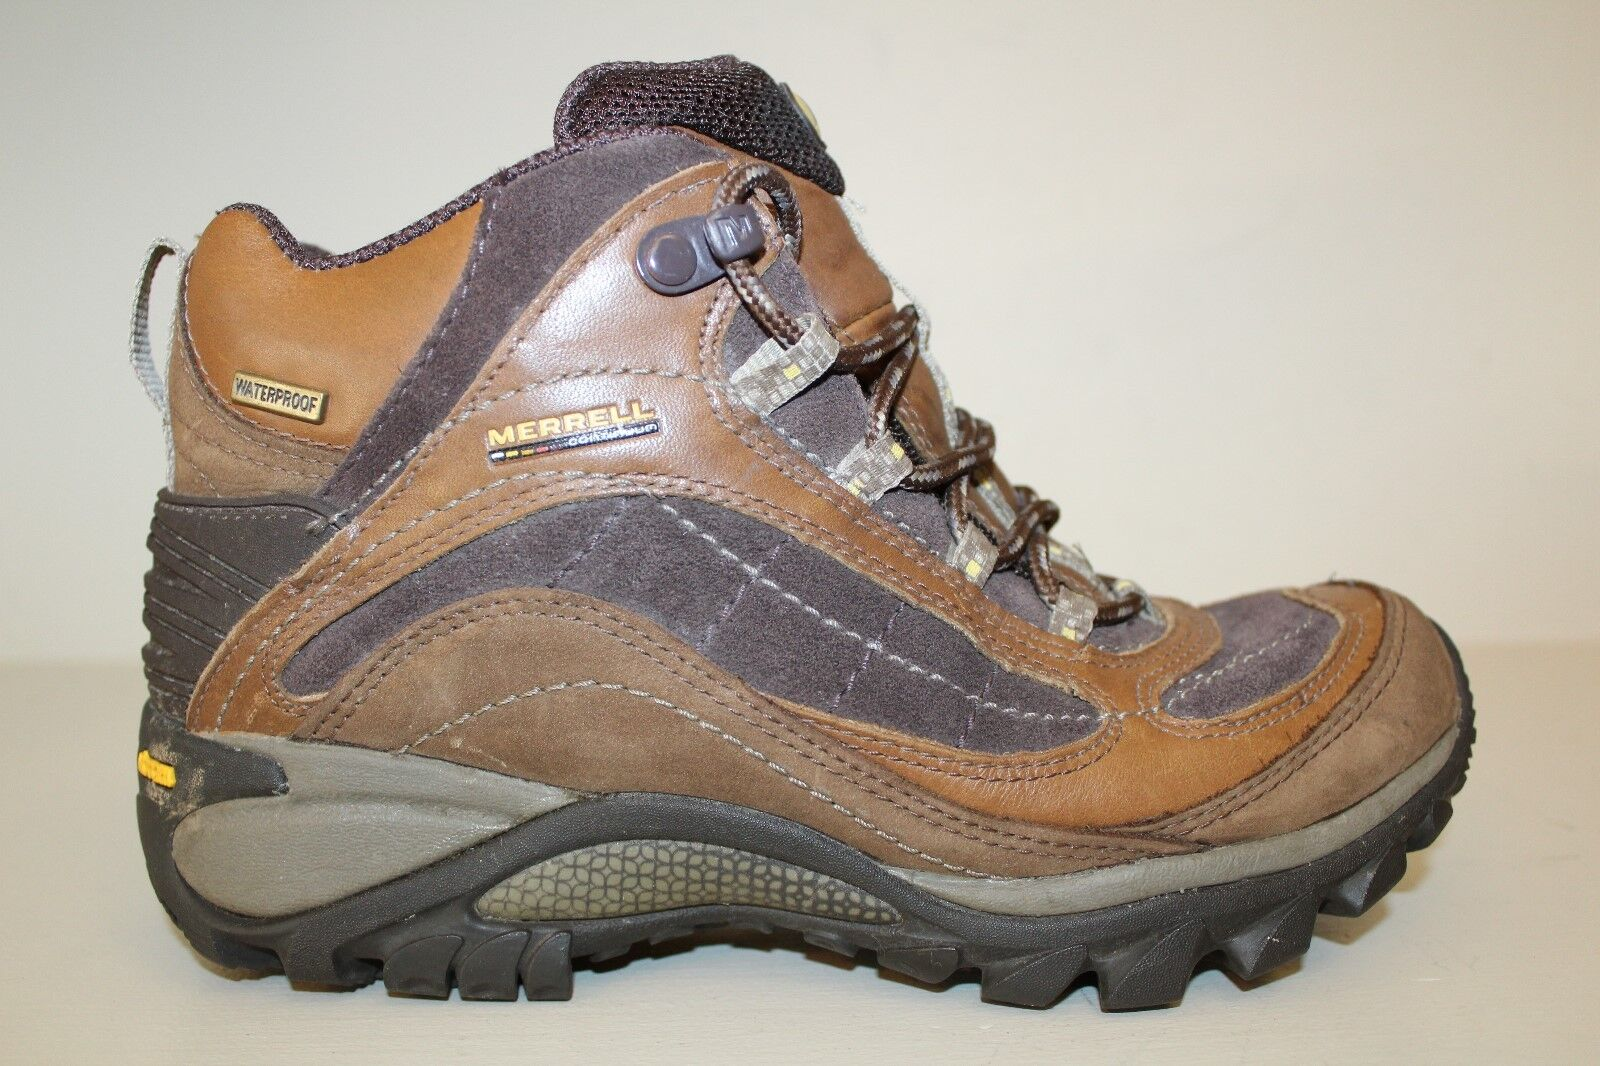 MERRELL Womens Hiking Boots Sz 7   37.5 Continuum Brown Leather Waterproof shoes